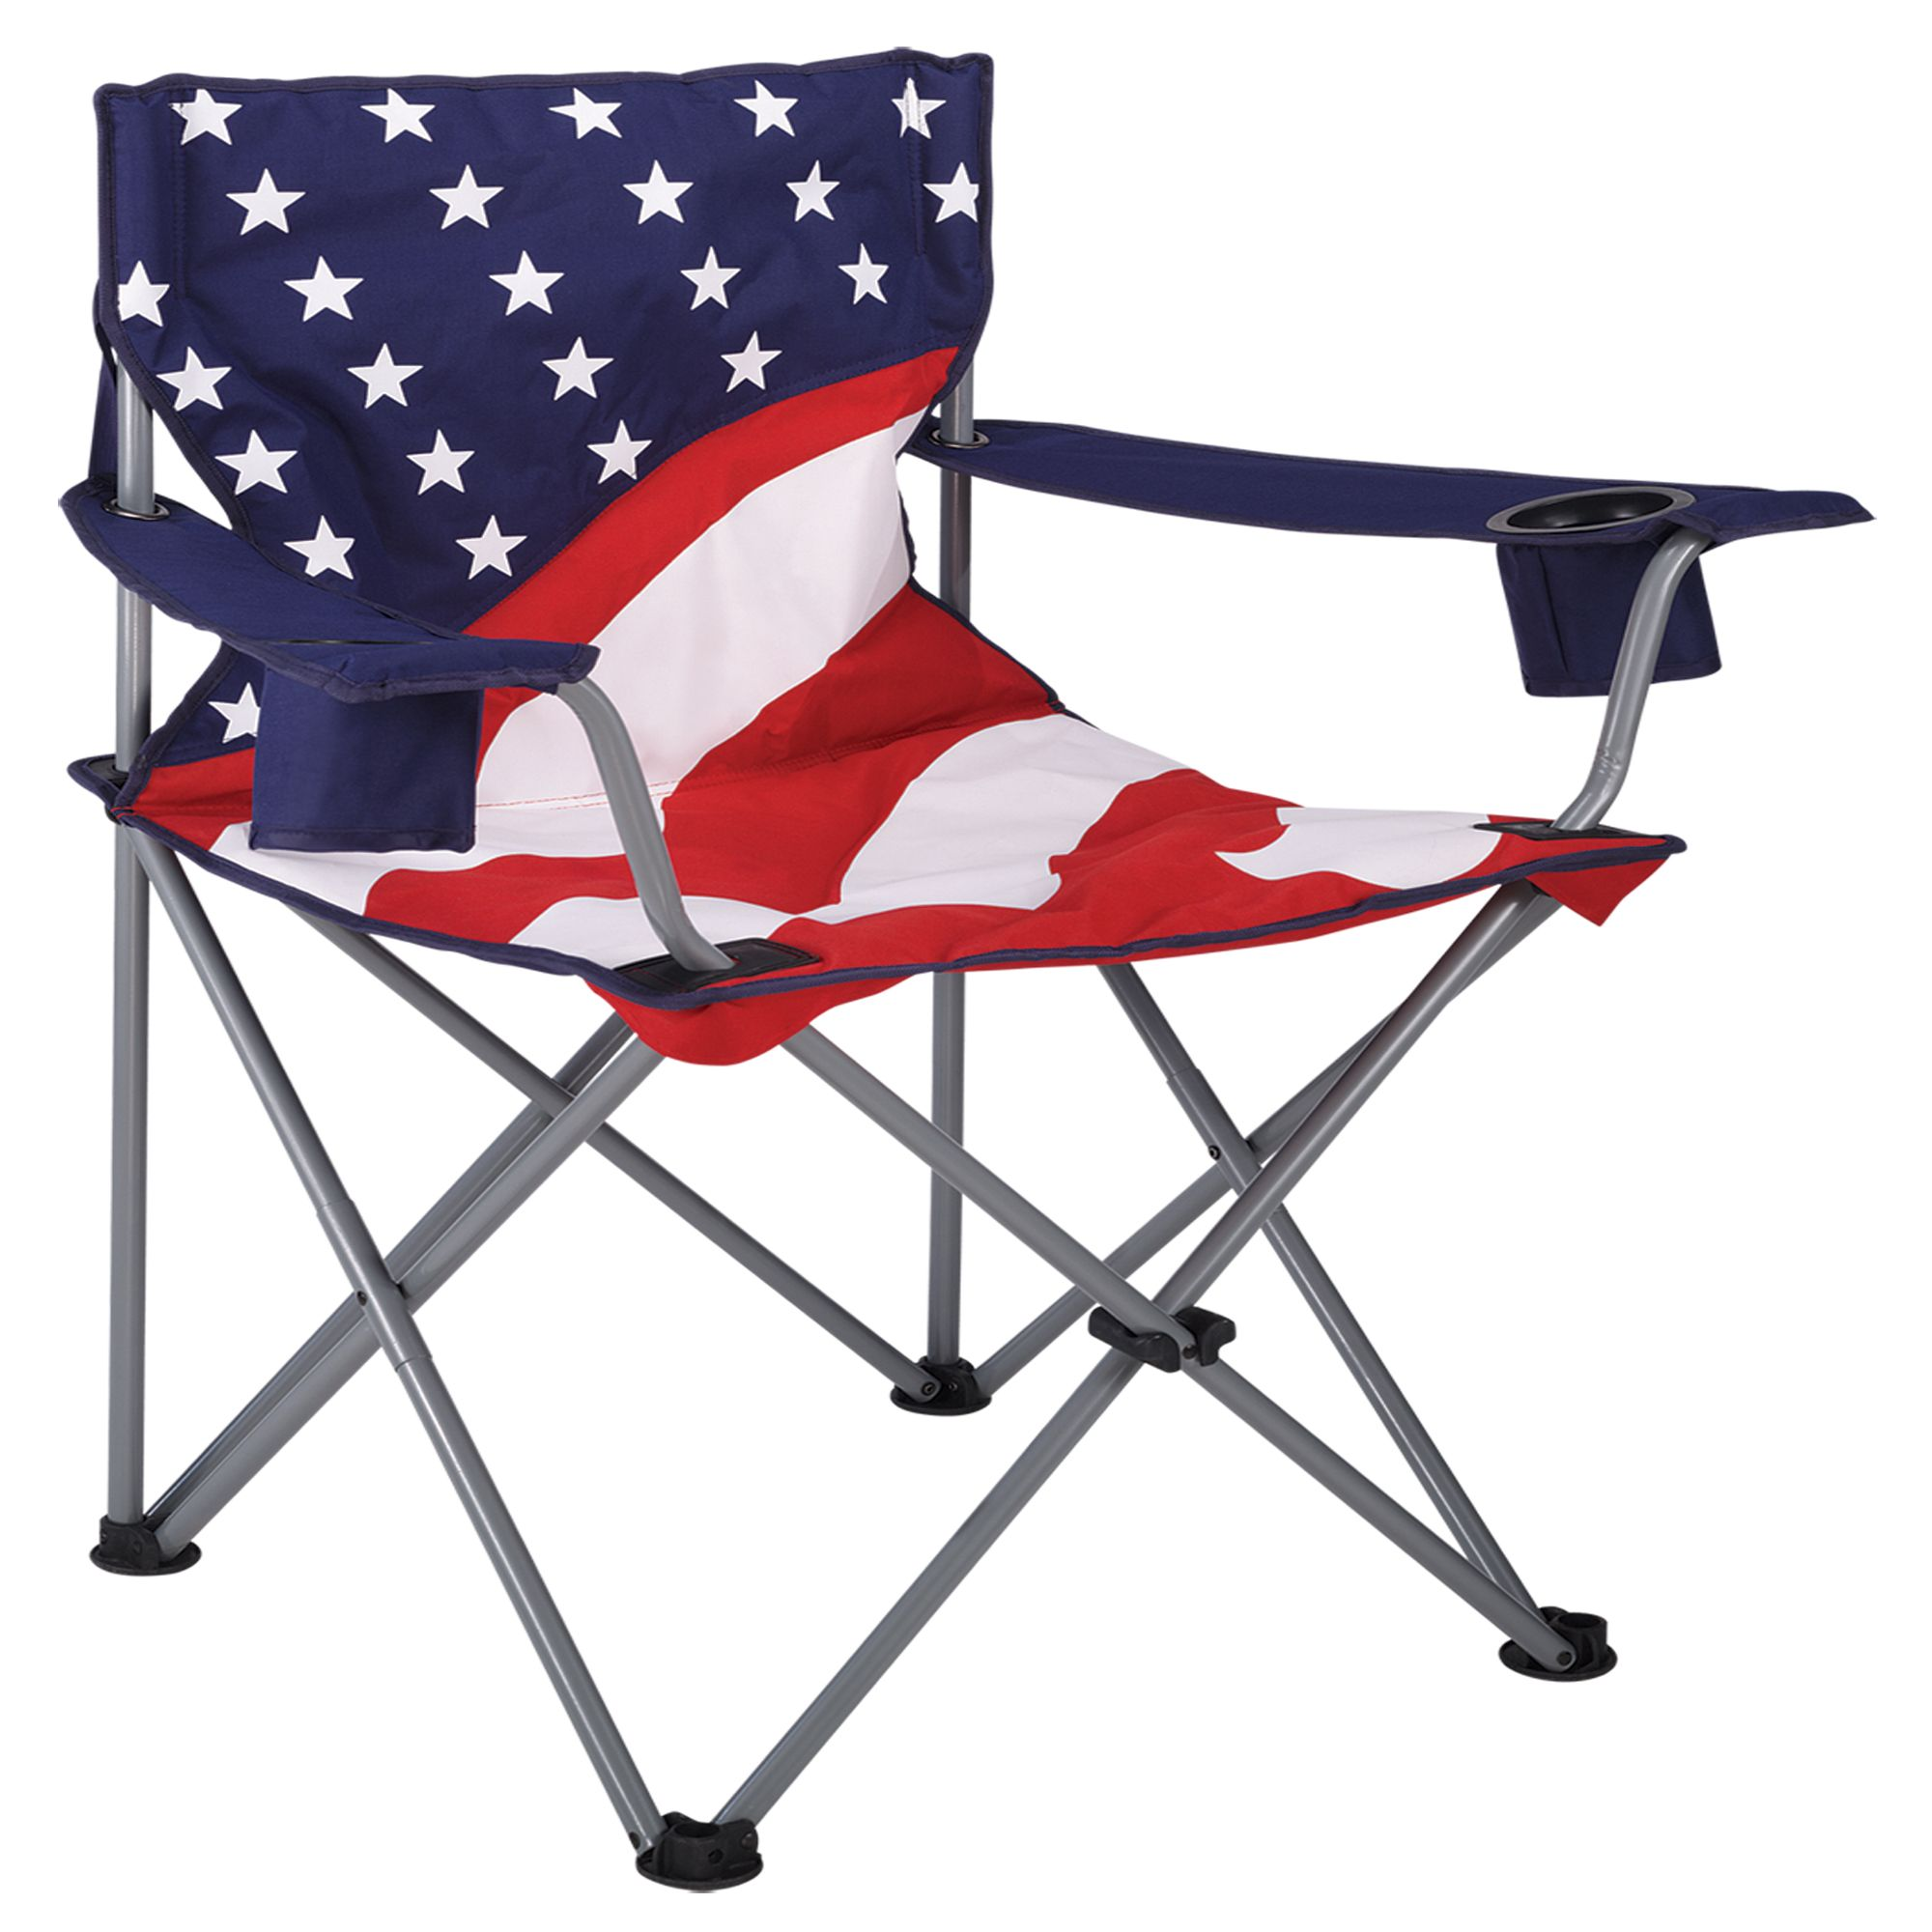 northwest territory chairs dxracer gaming chair singapore padded oversize flag fitness